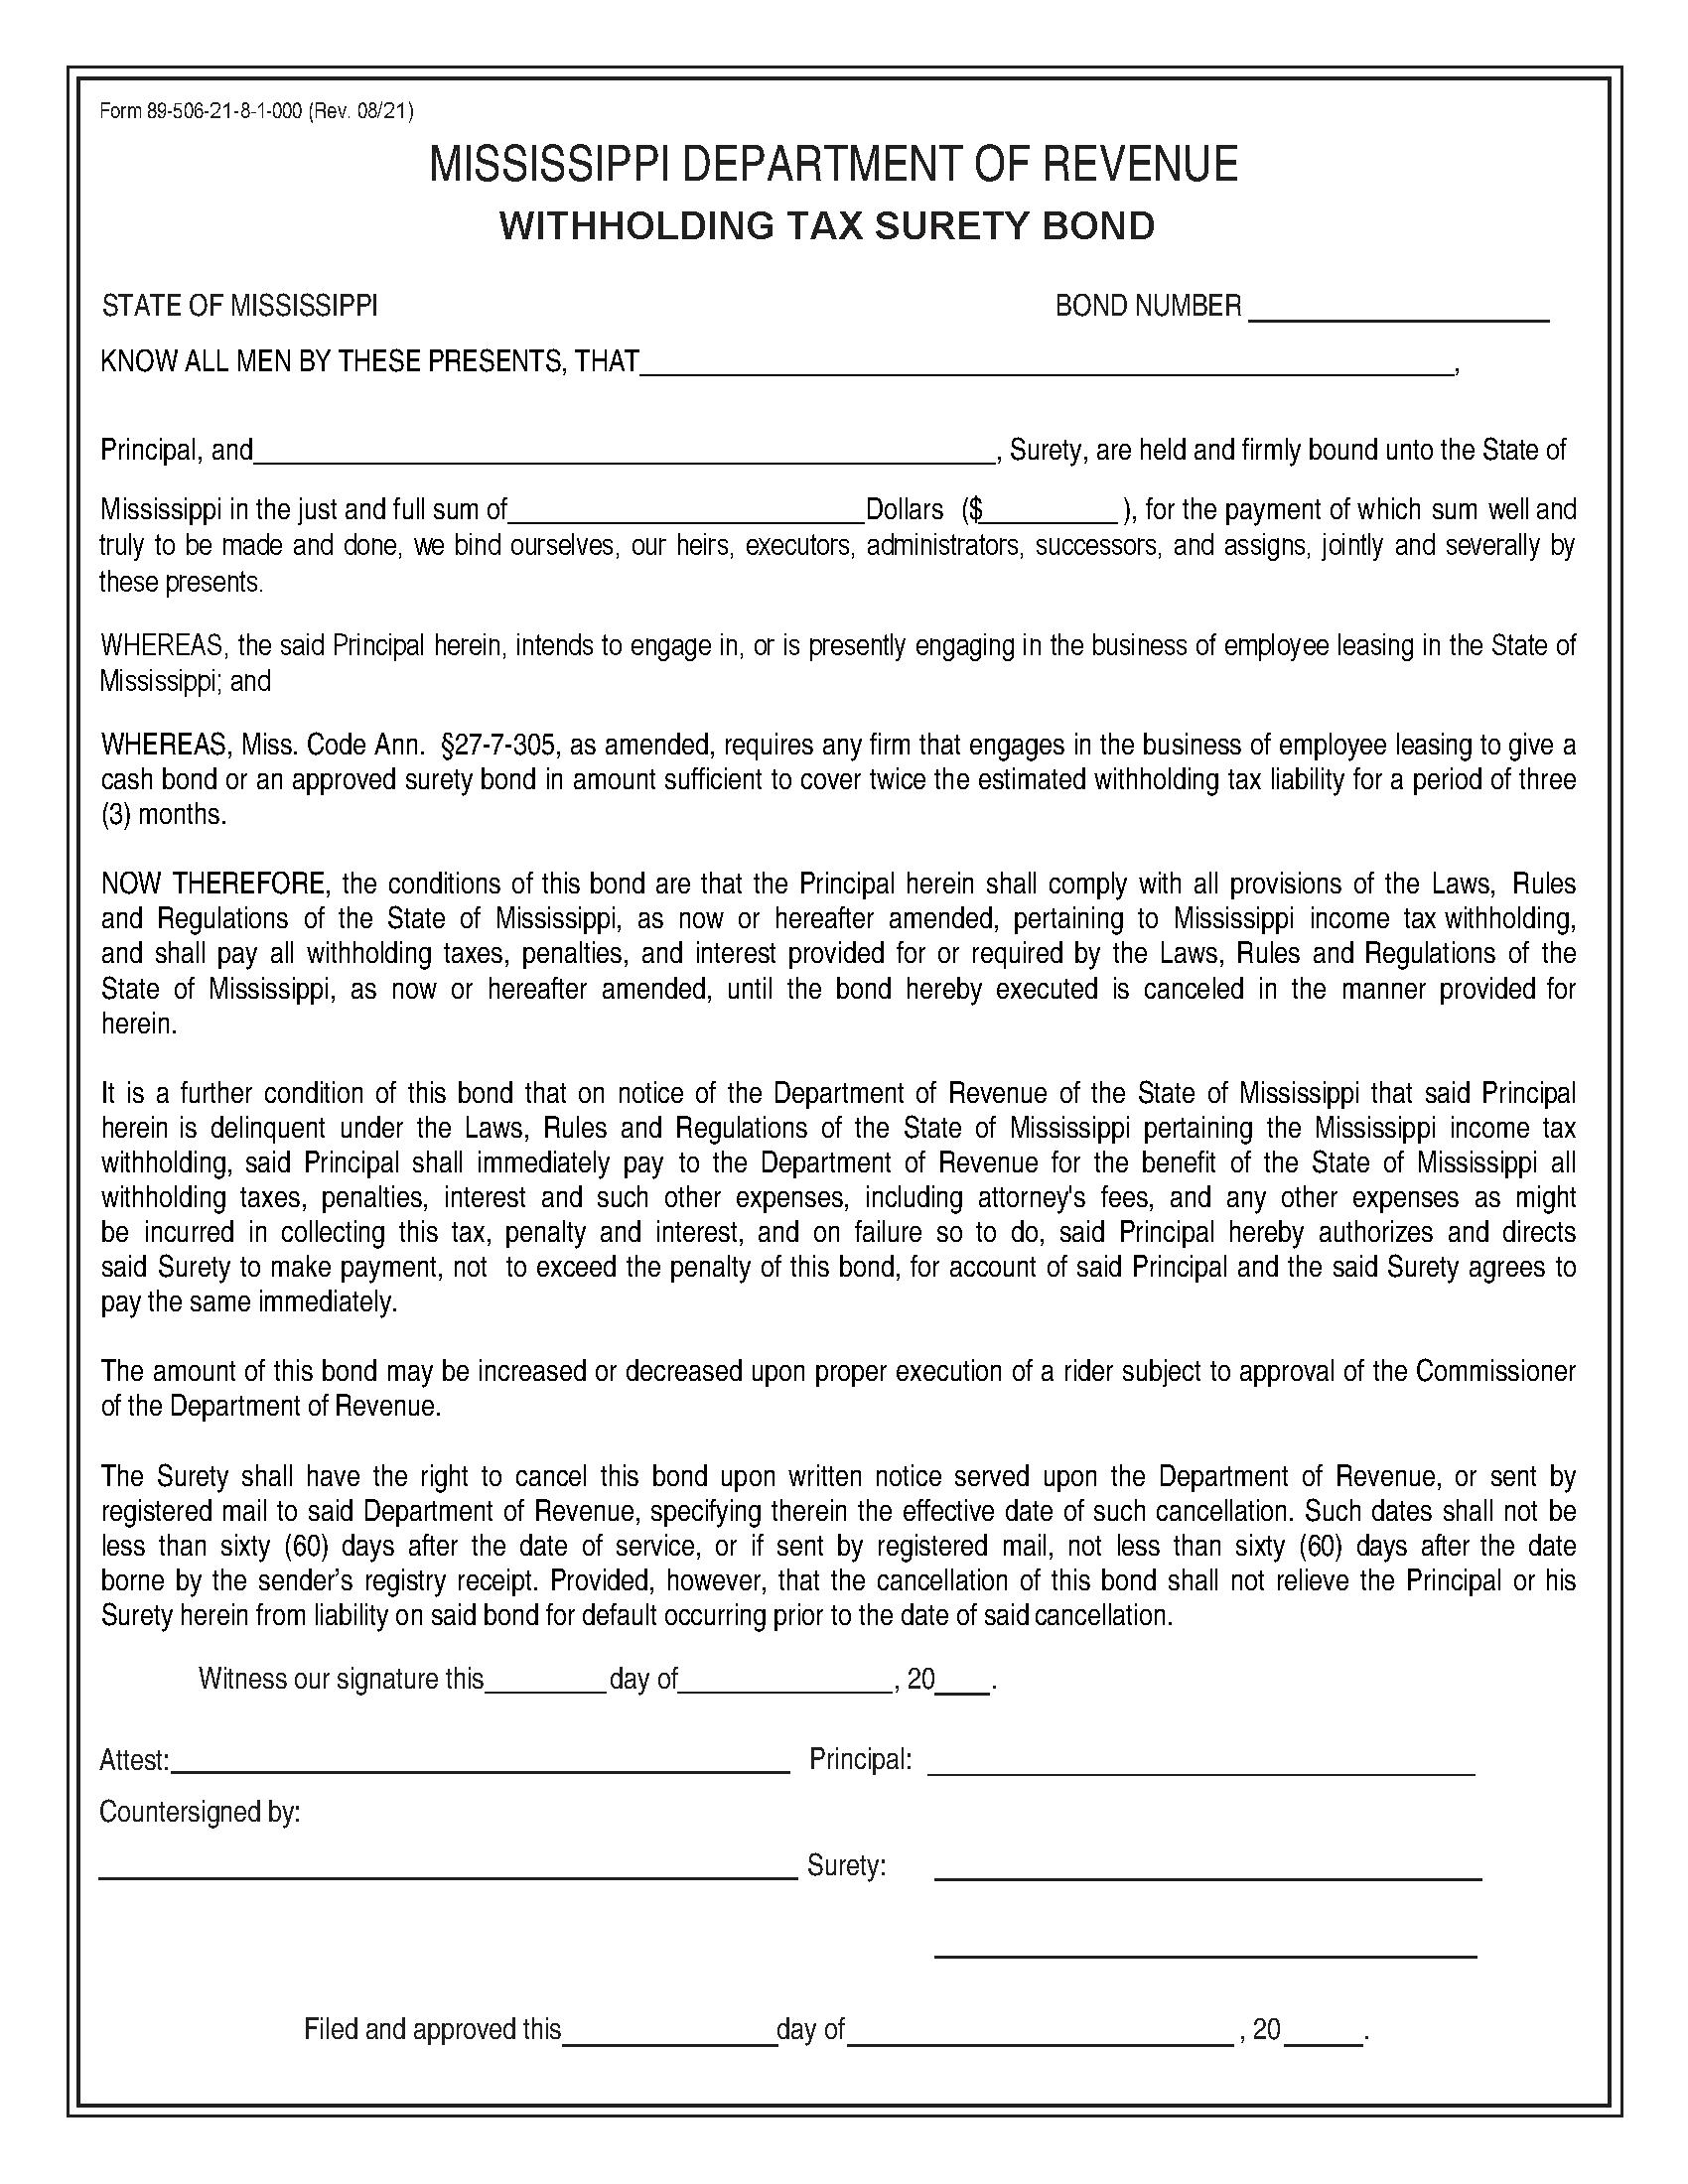 State of Mississippi Withholding Tax: Employee Leasing Bond sample image